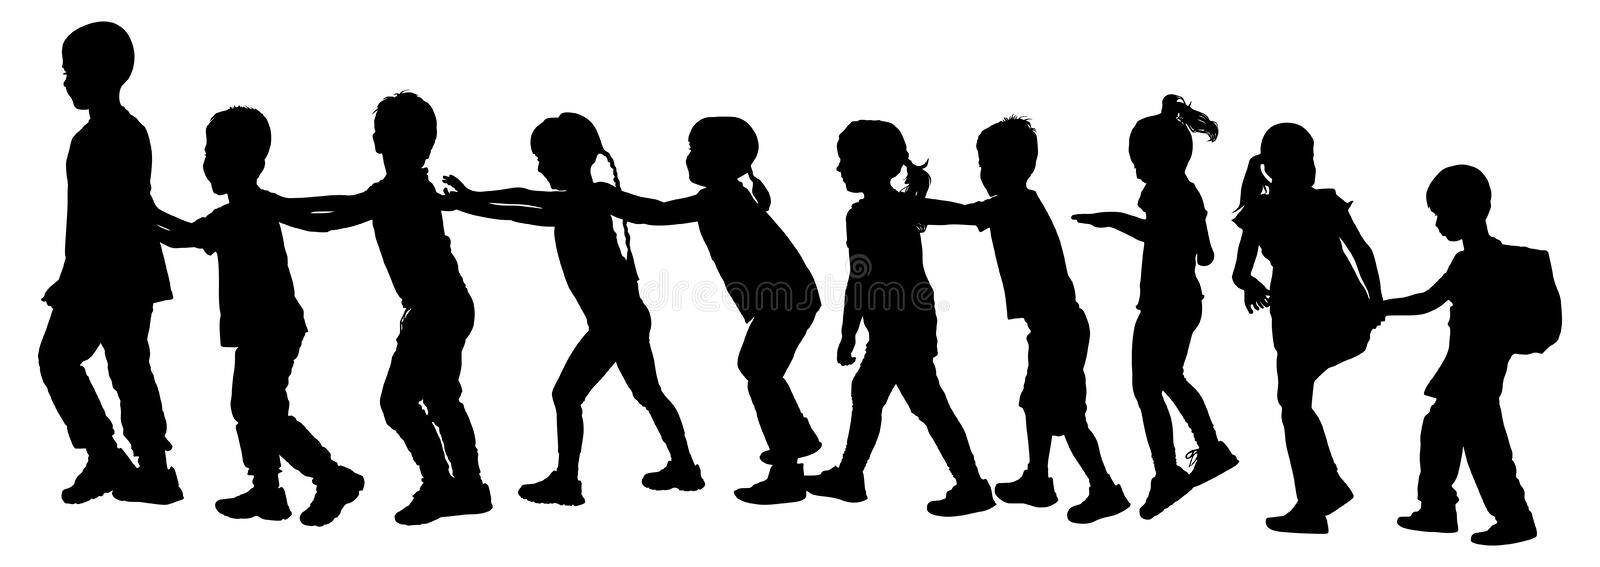 Children play train game silhouette. Children play train game silhouette illustration isolated on white background. Group of teens running in the park kids royalty free illustration